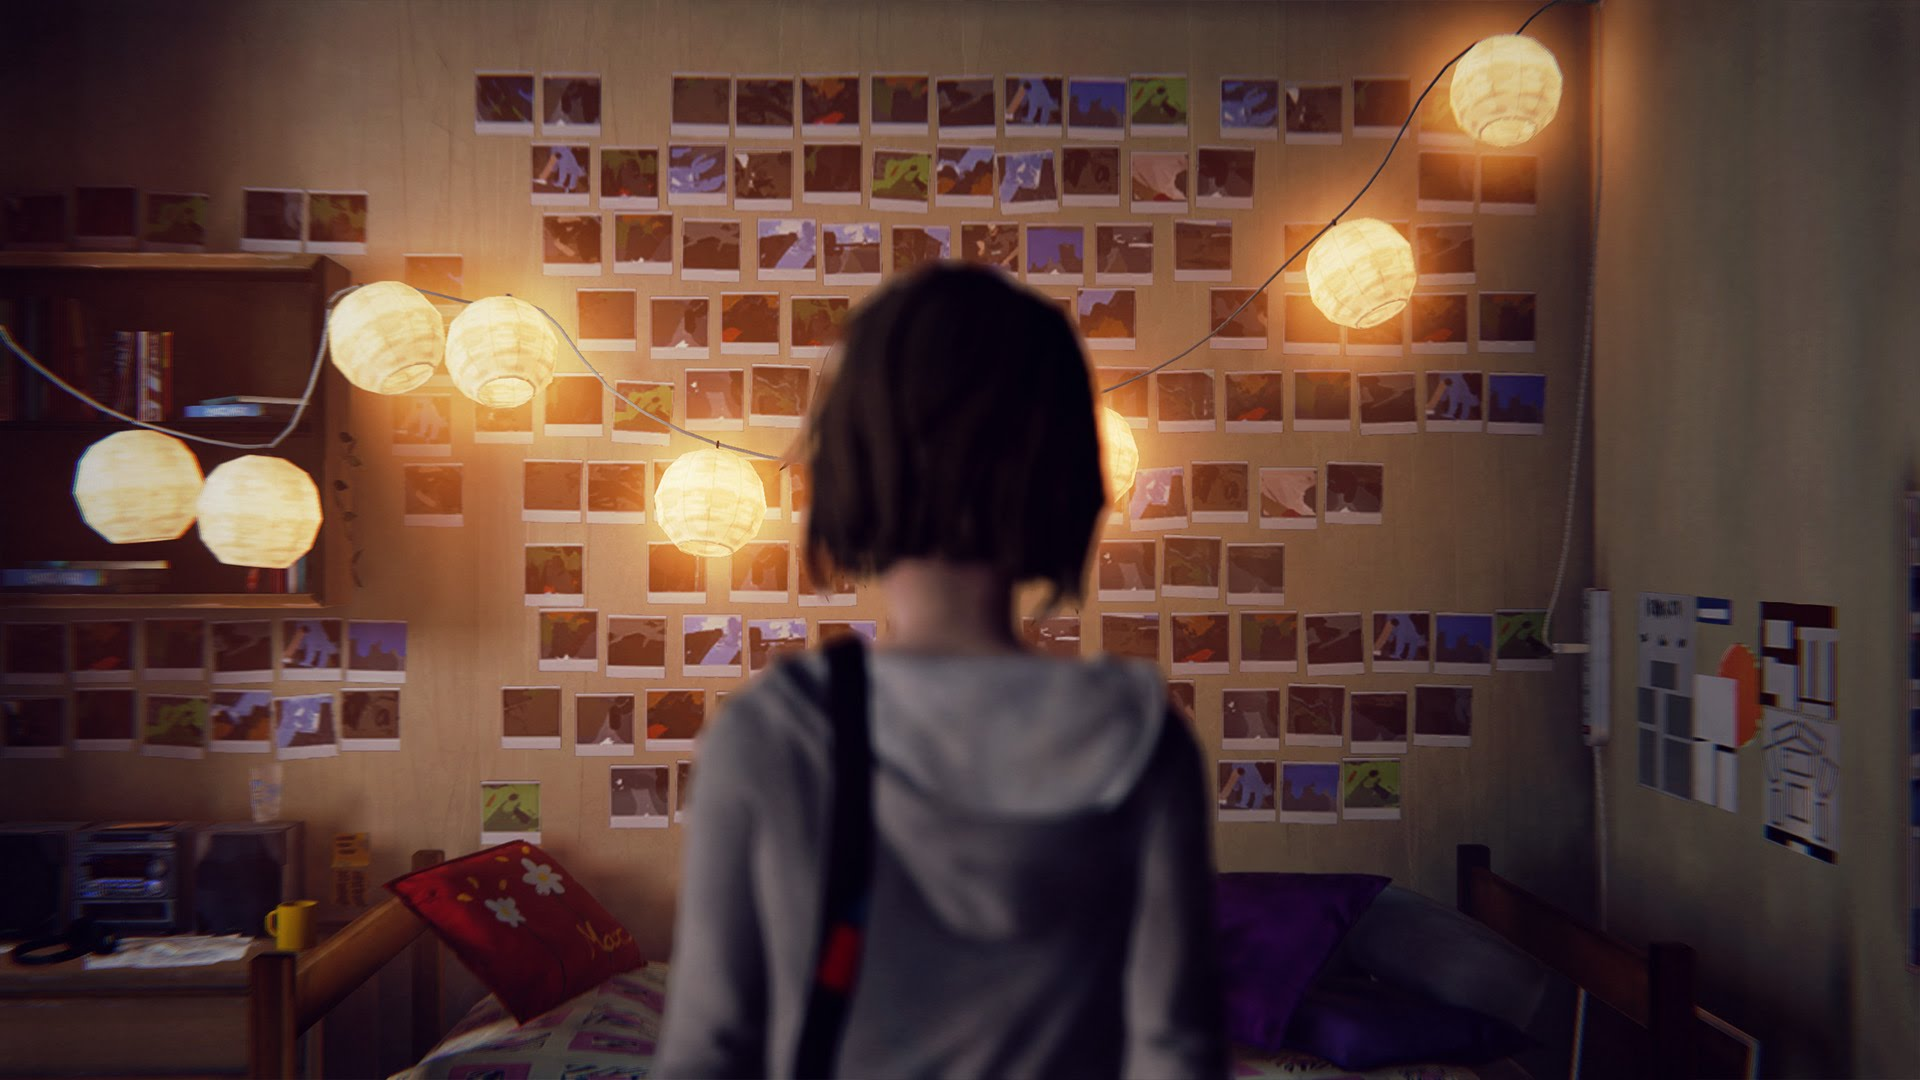 I wonder if, in some weird parallel world, an article has ever been written about Life is Strange that didn't include this screenshot?